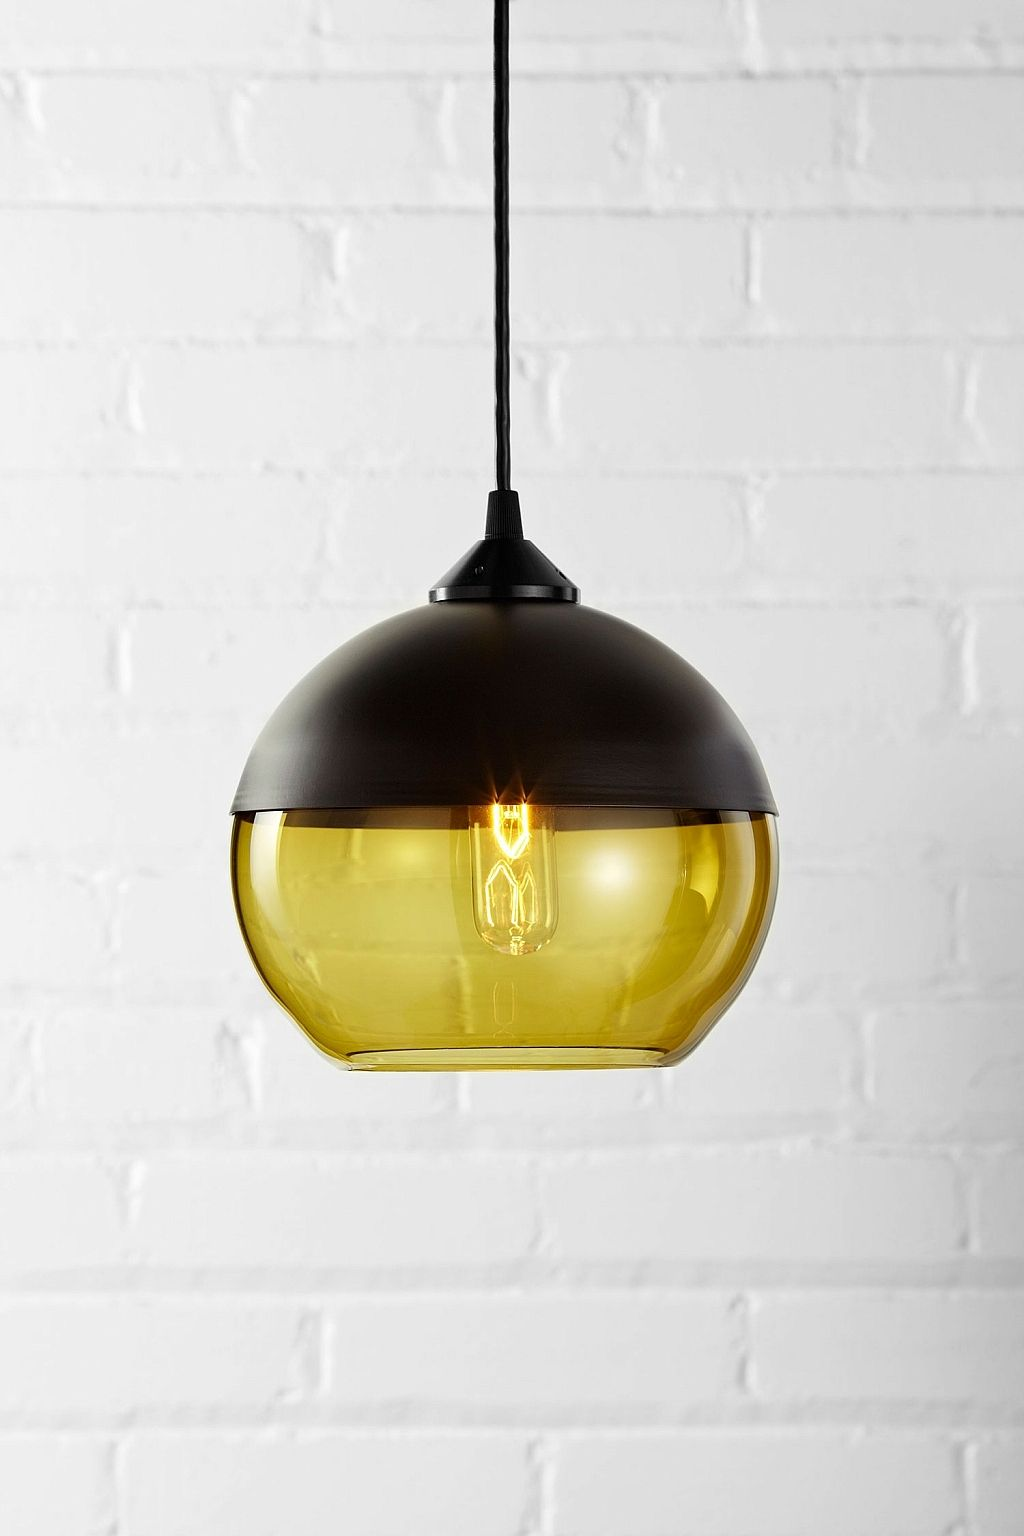 Parallel Series Pendant Lamps Handcrafted by Hennepin Made Pendant